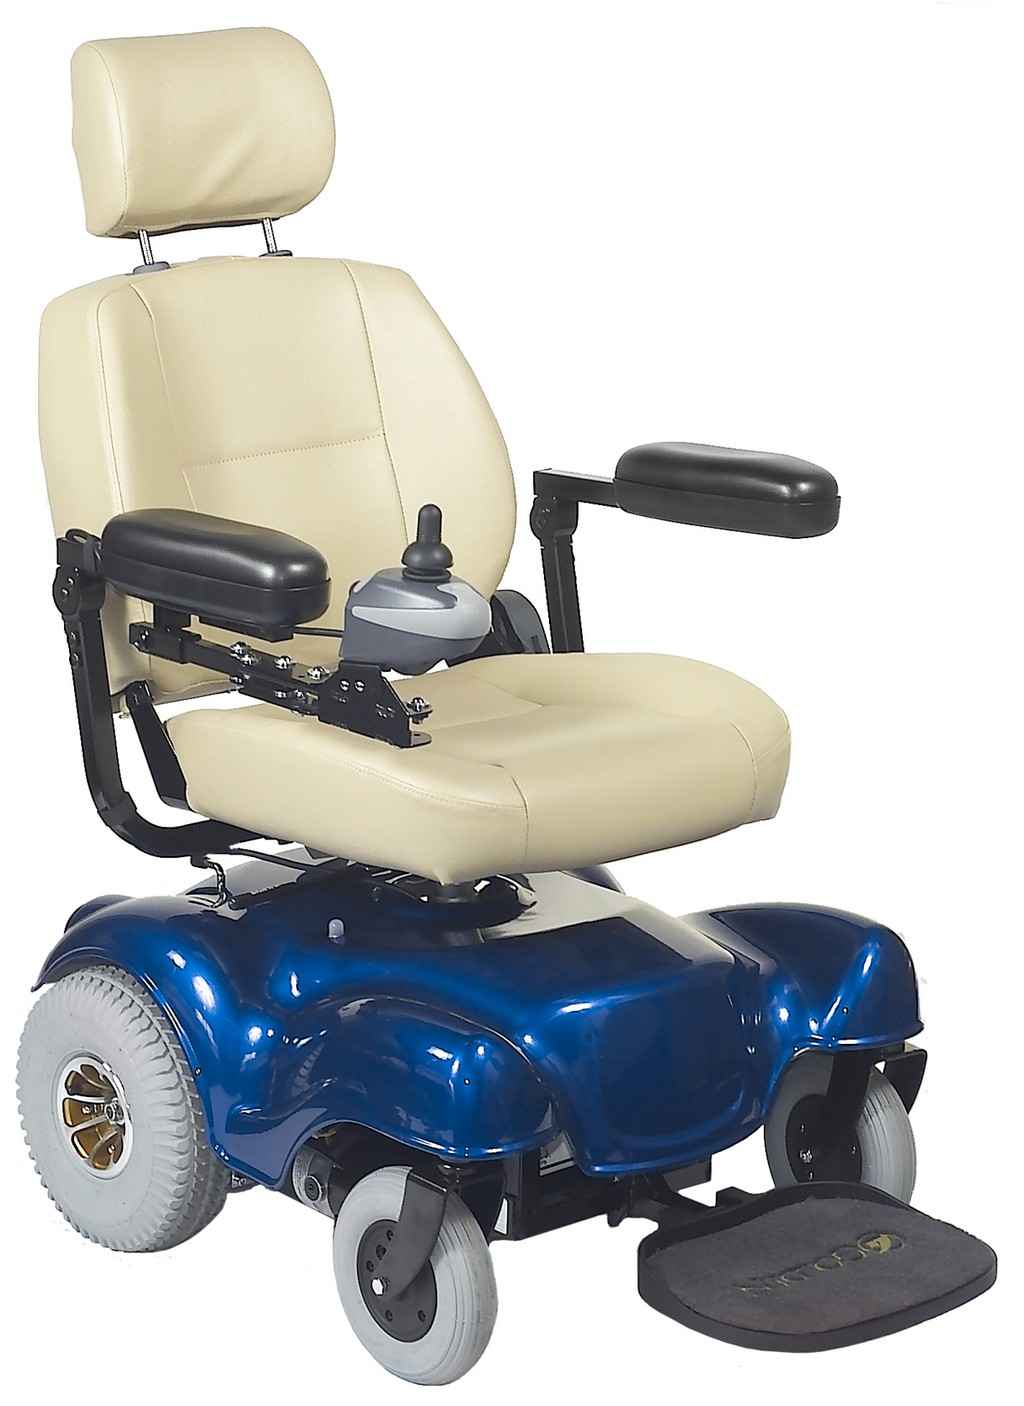 weight of motorized wheelchair, motorized wheel chair ads, jet 3 motorized wheelchair, lifts for transporting motorized wheelchairs